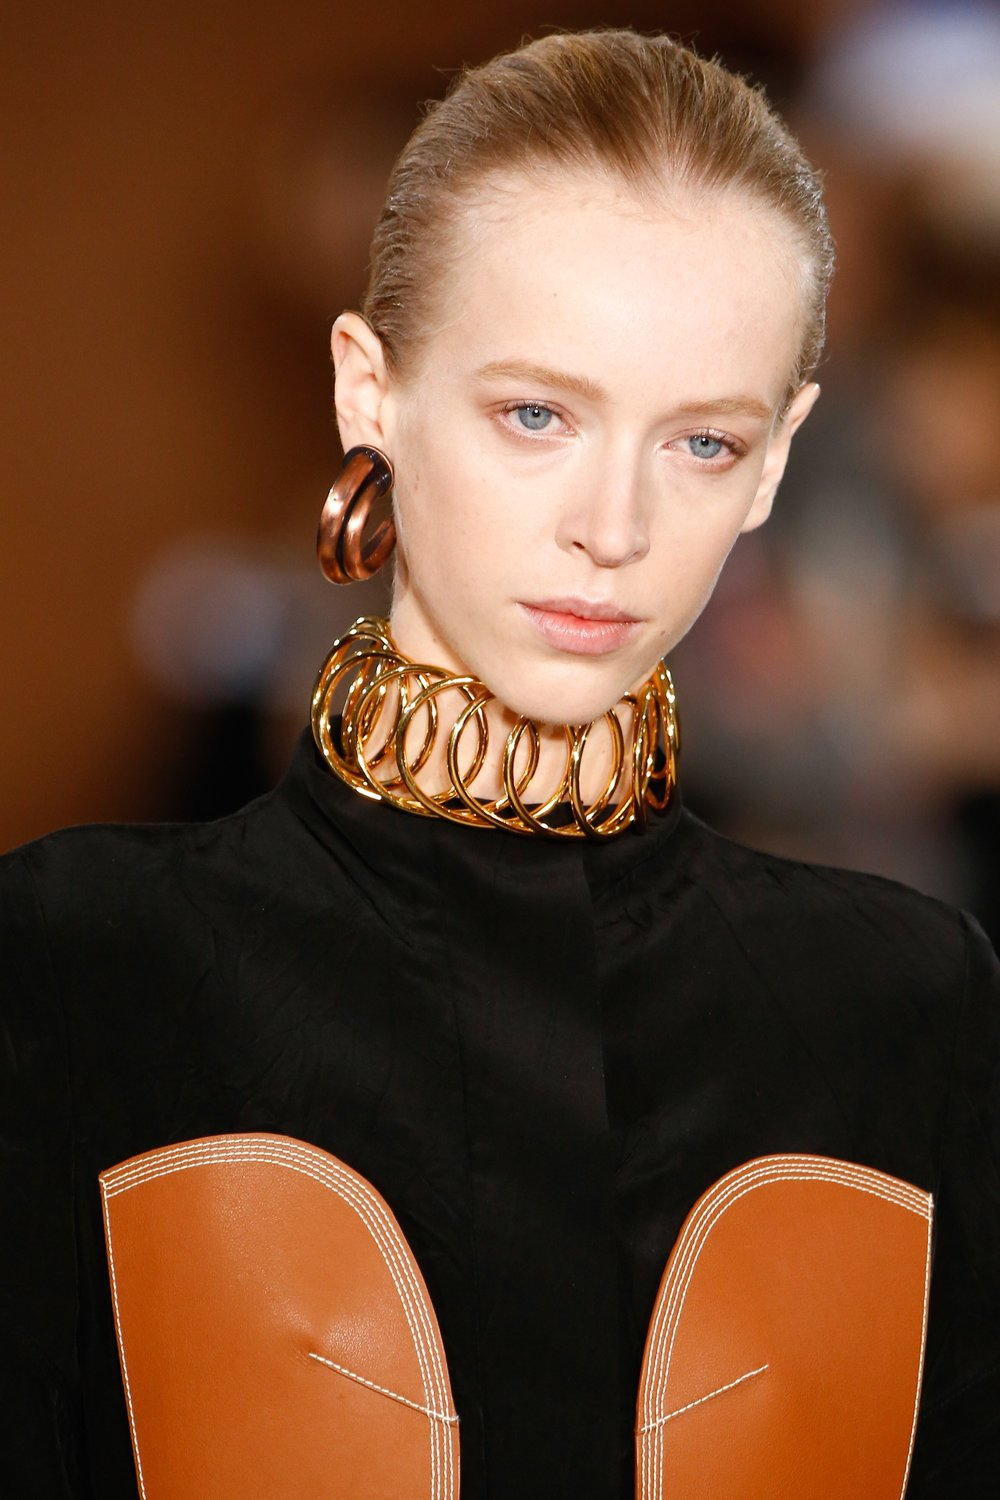 Tribal inspired choker from Loewe's Fall 2016-17 collection. Photo source: Vogue Runway.